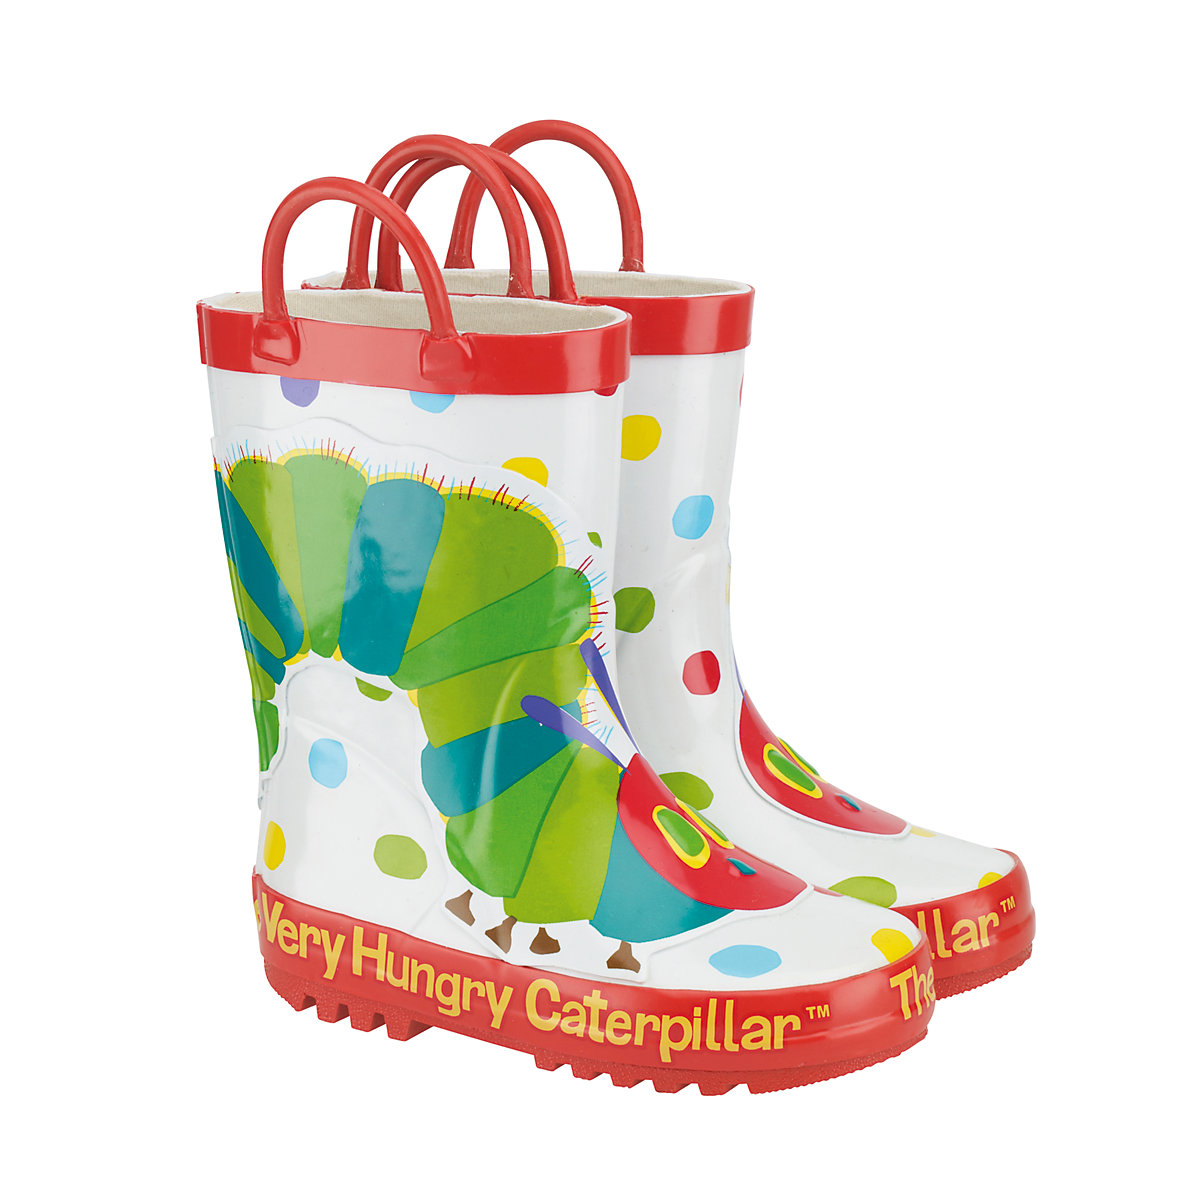 The Very Hungry Caterpillar Wellies - The Very Hungry Caterpillar Gifts